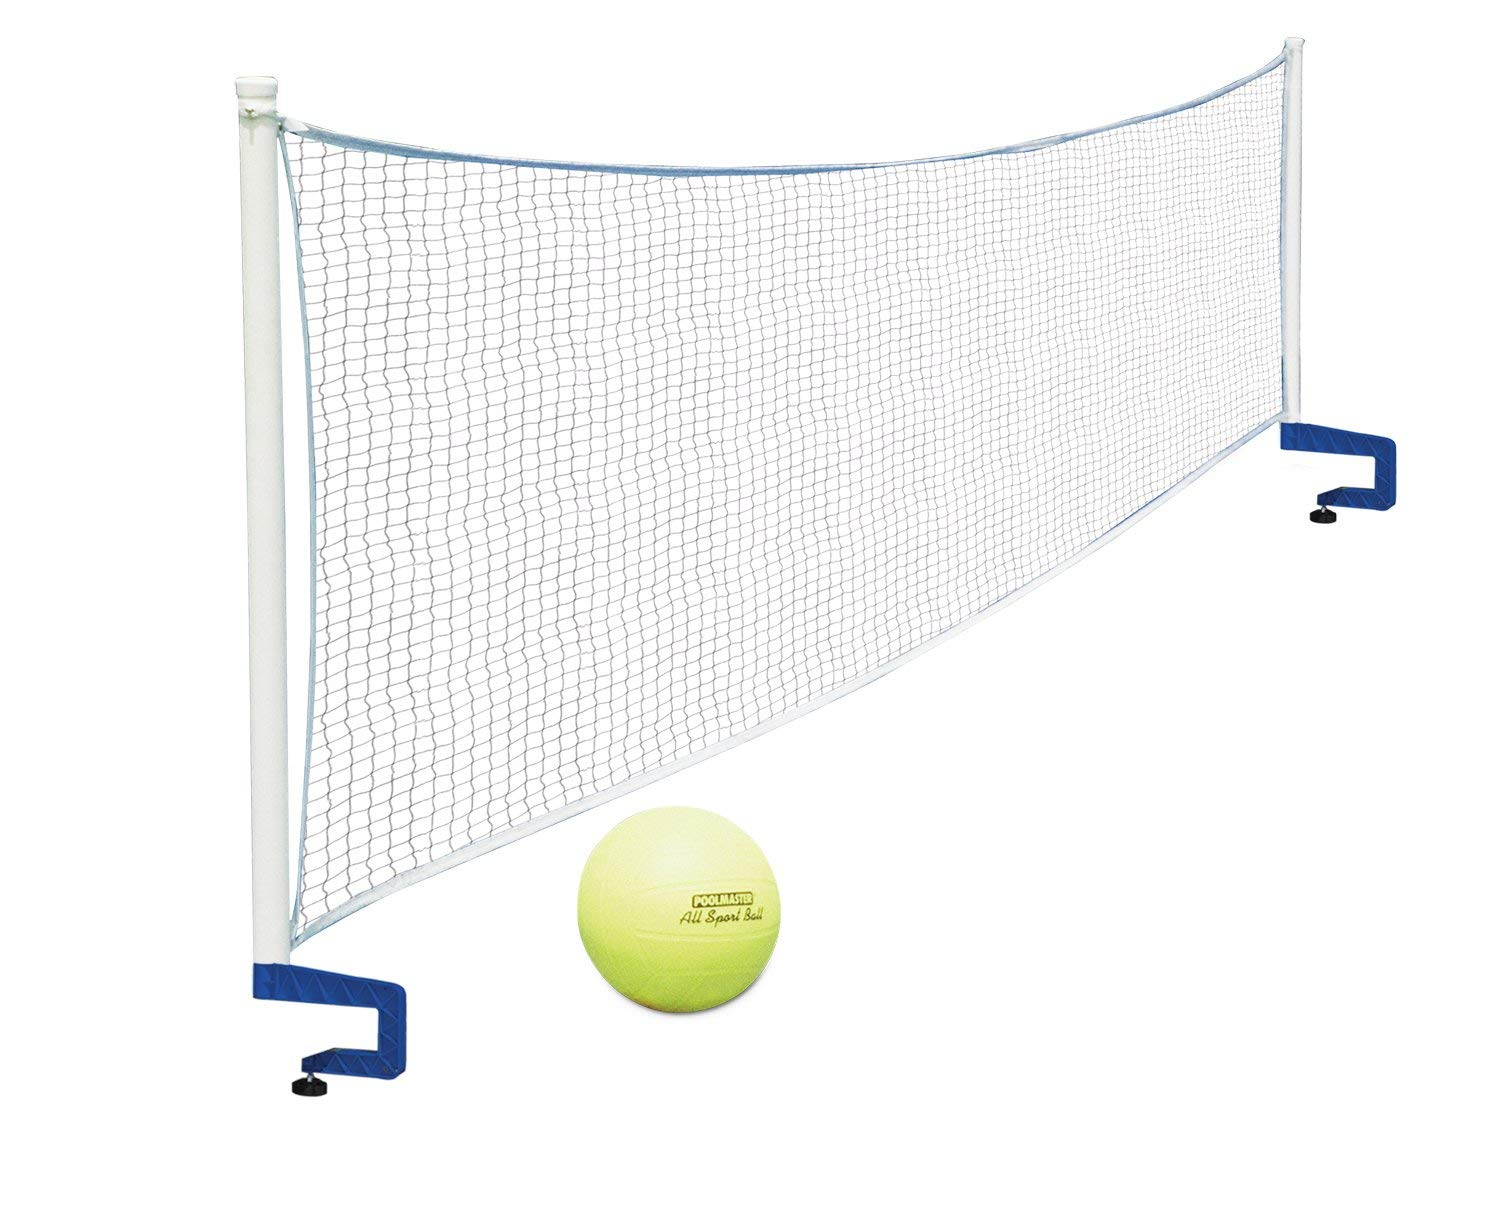 Poolmaster 72786 Above-Ground Mounted Poolside Volleyball / Badminton Game with Bracket Mounts (Renewed) by Poolmaster